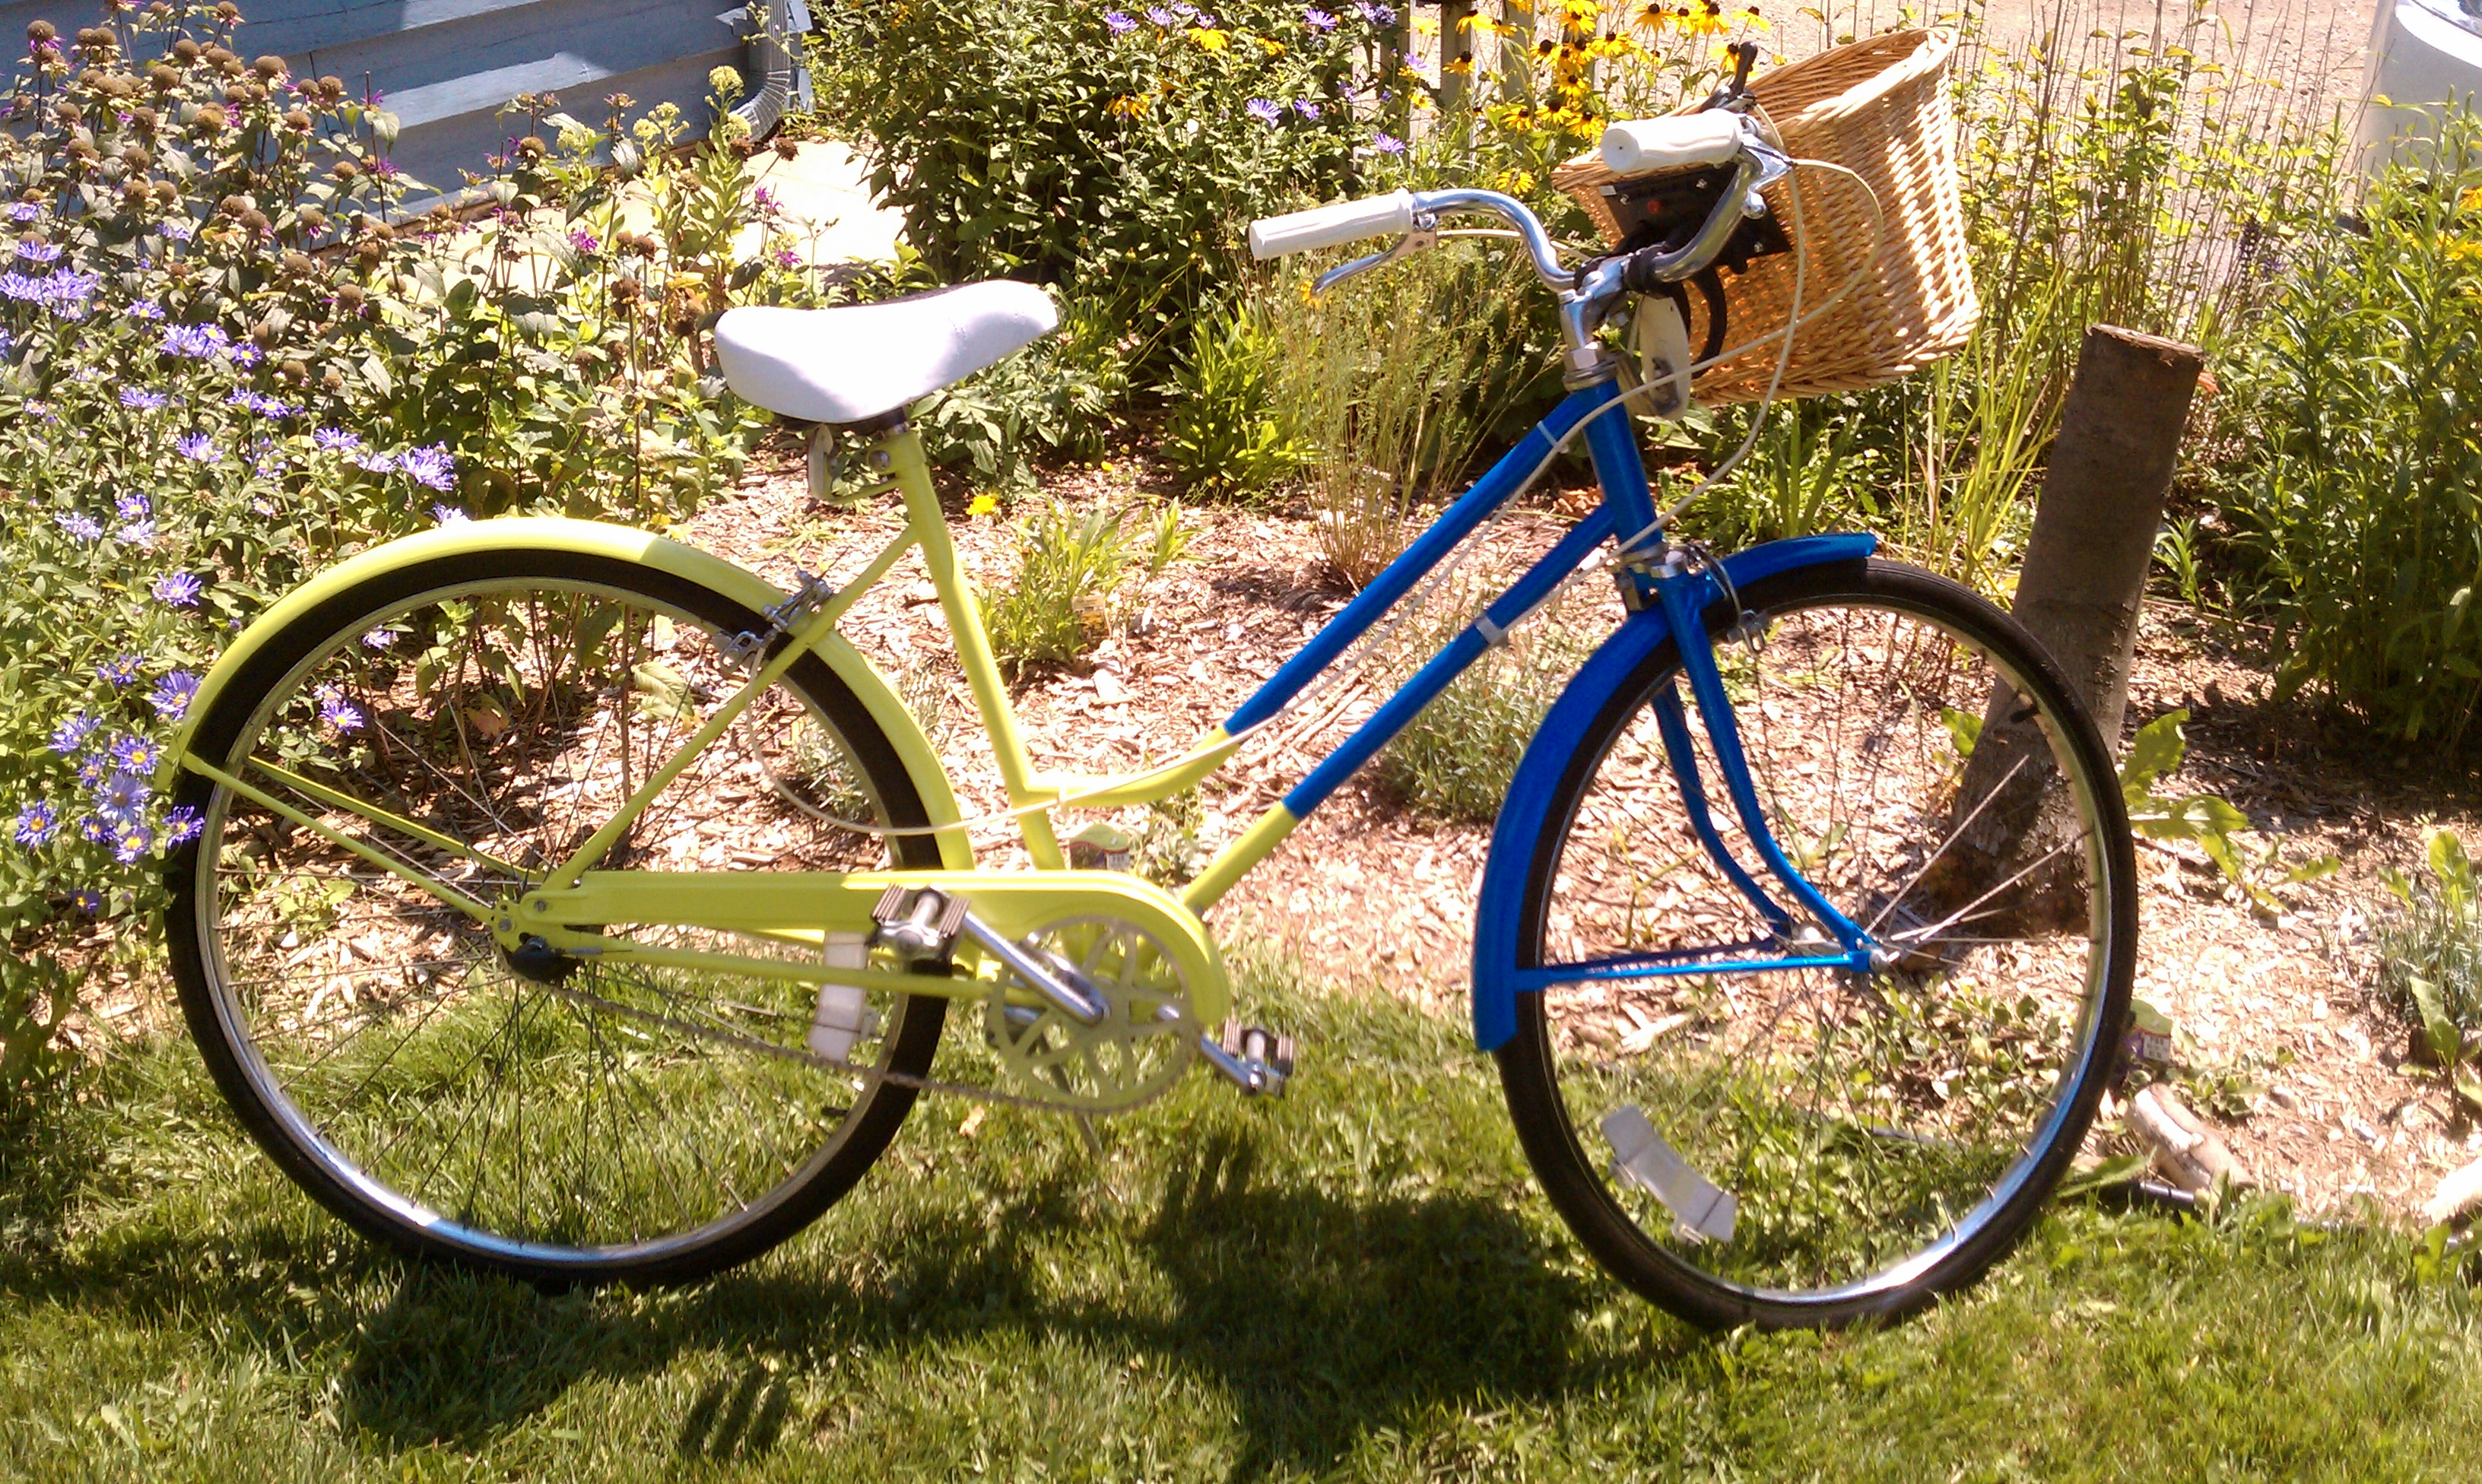 Jessica's Rebuilt Bicycle